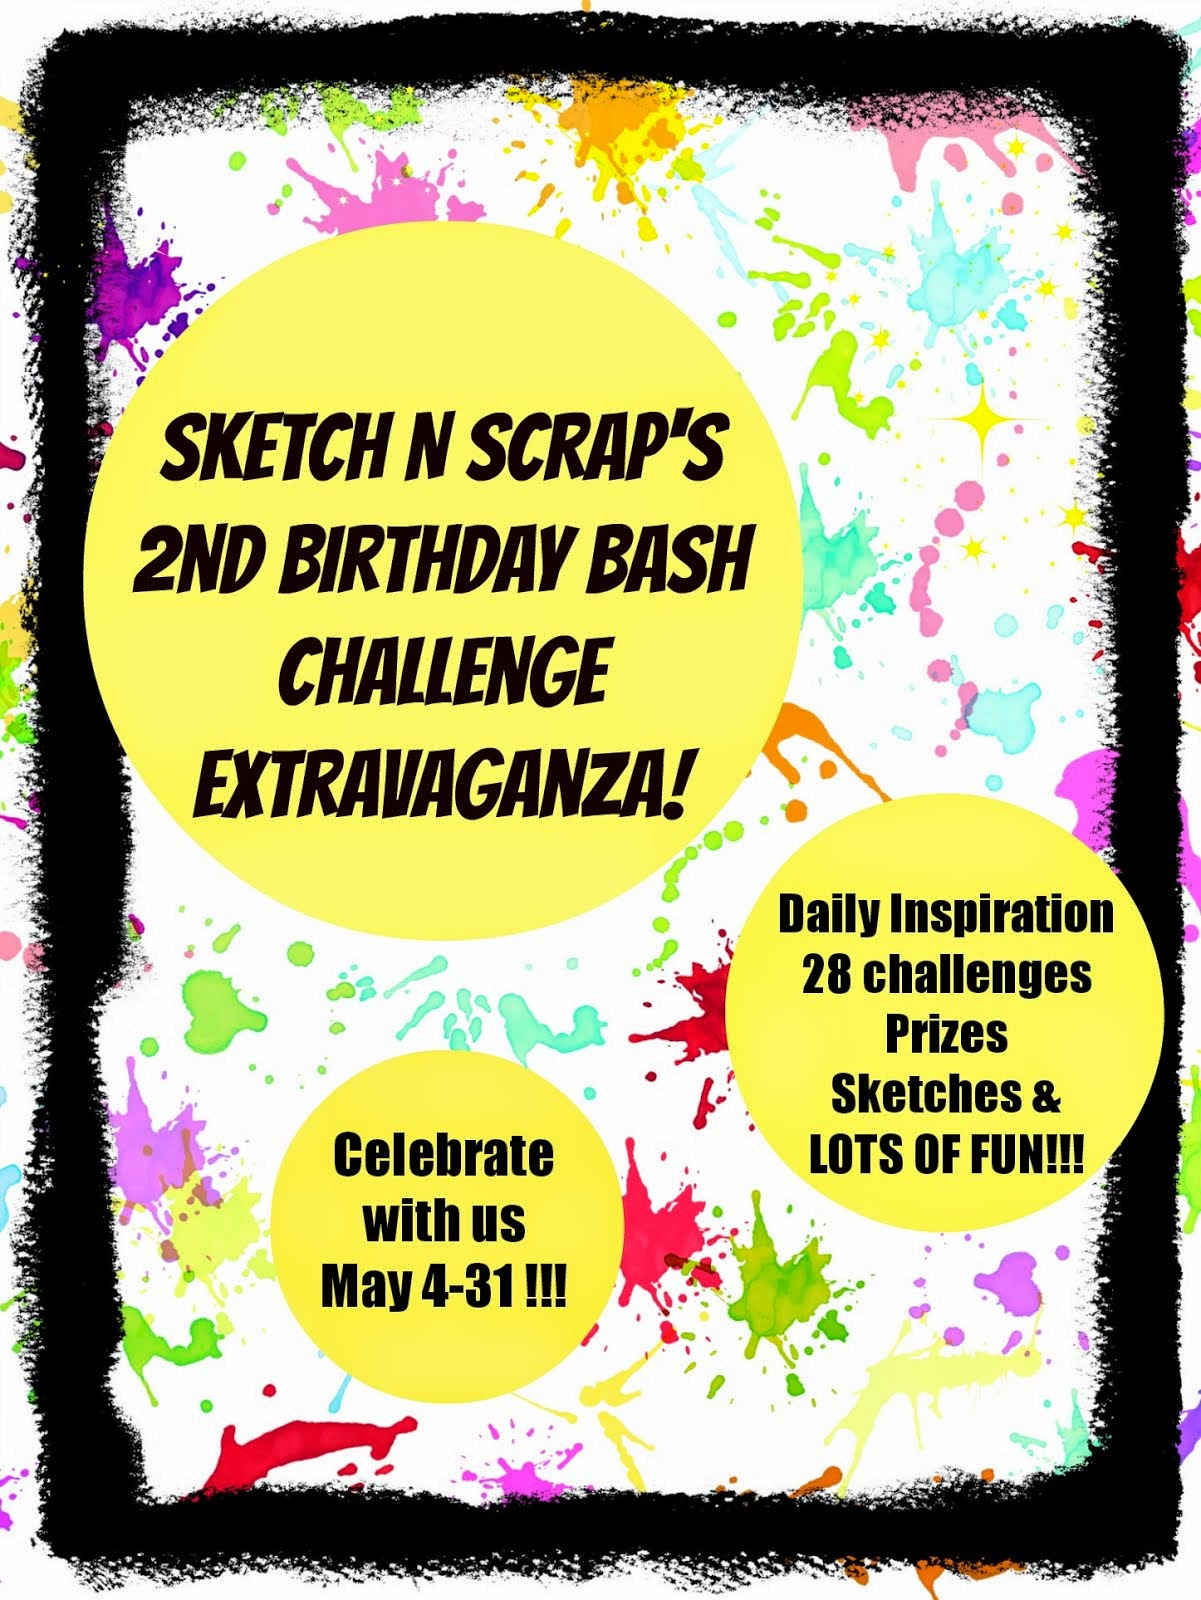 Sketch N Scrap is turning 2!!!